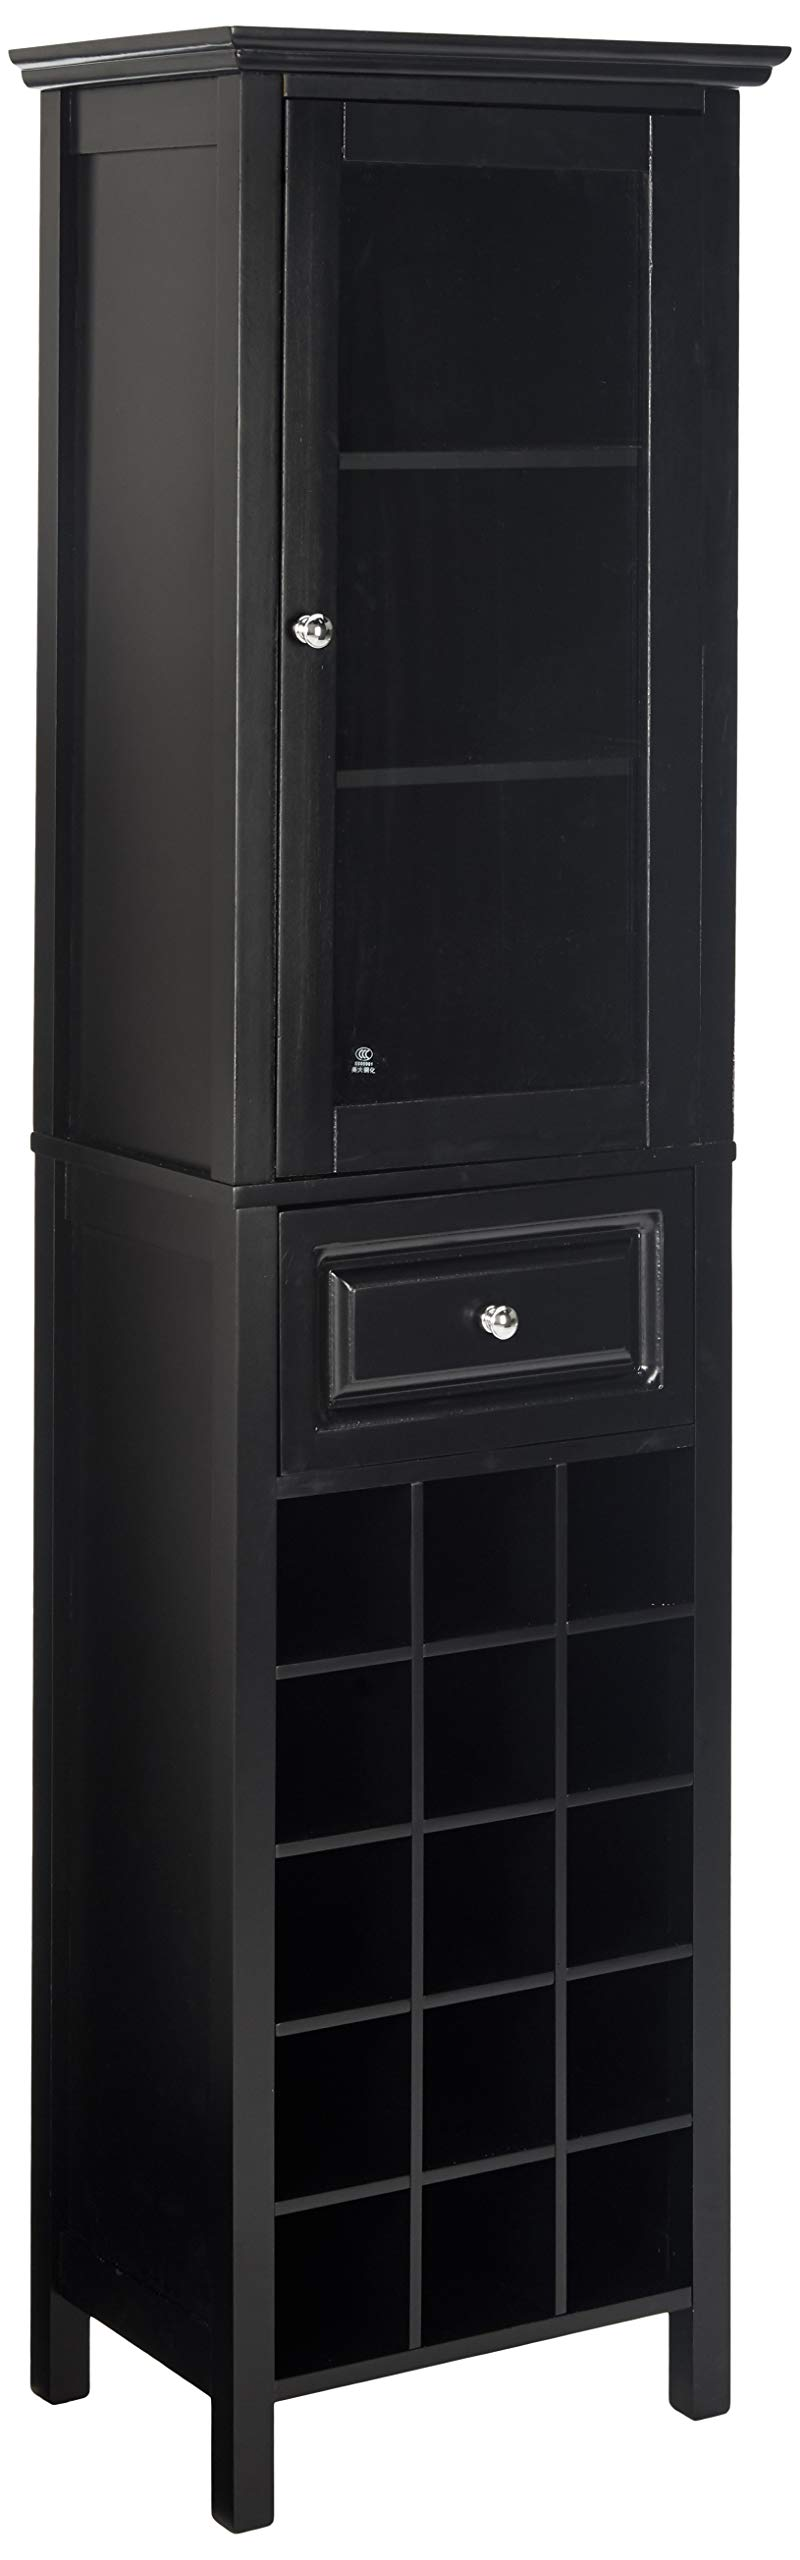 Winsome Burgundy Wine Storage, Black by Winsome